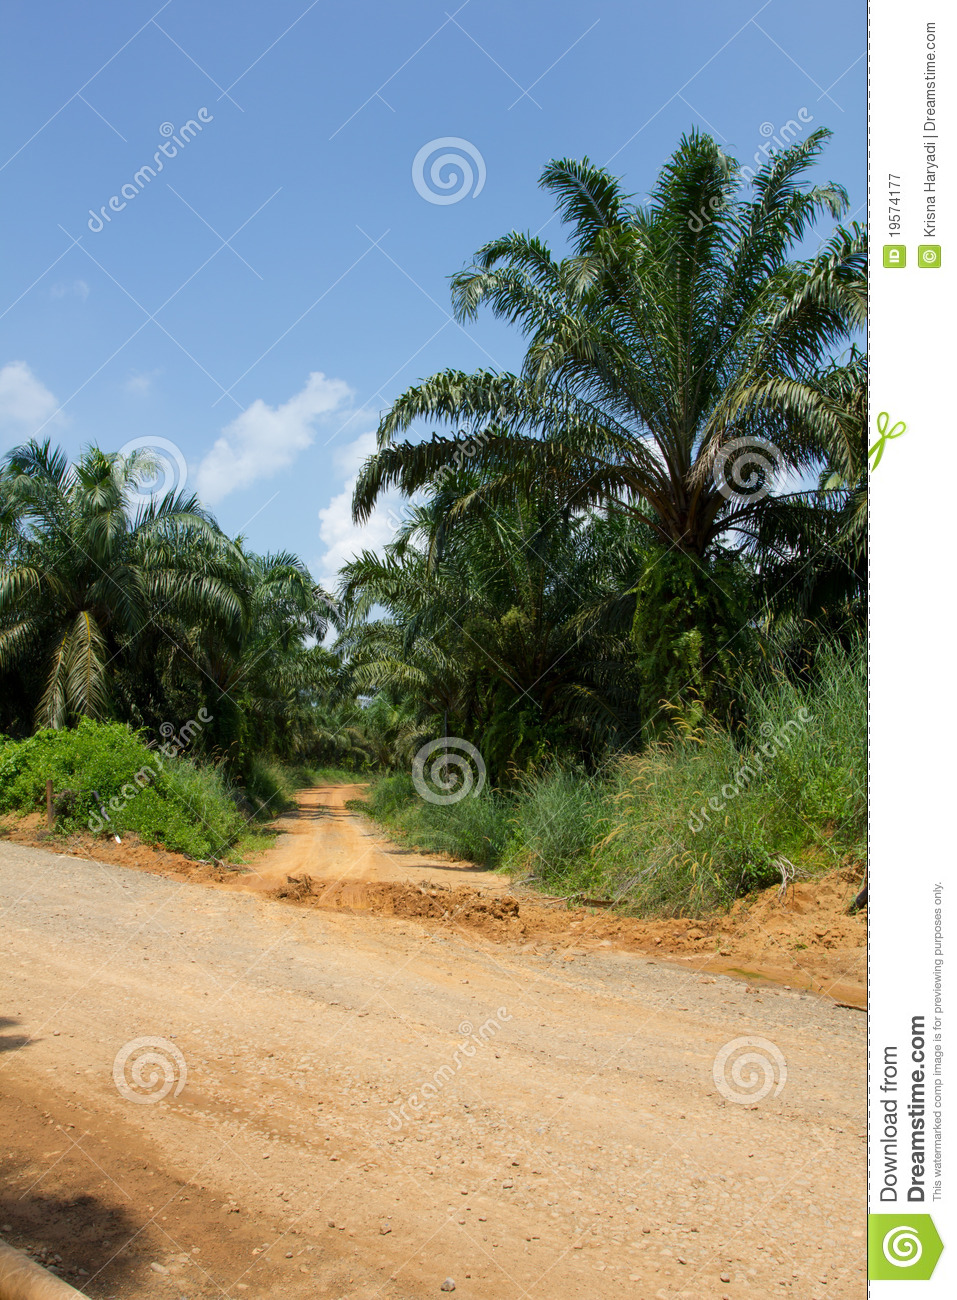 Road To Oil Palm Tree Plantation Area. Stock Image - Image ...